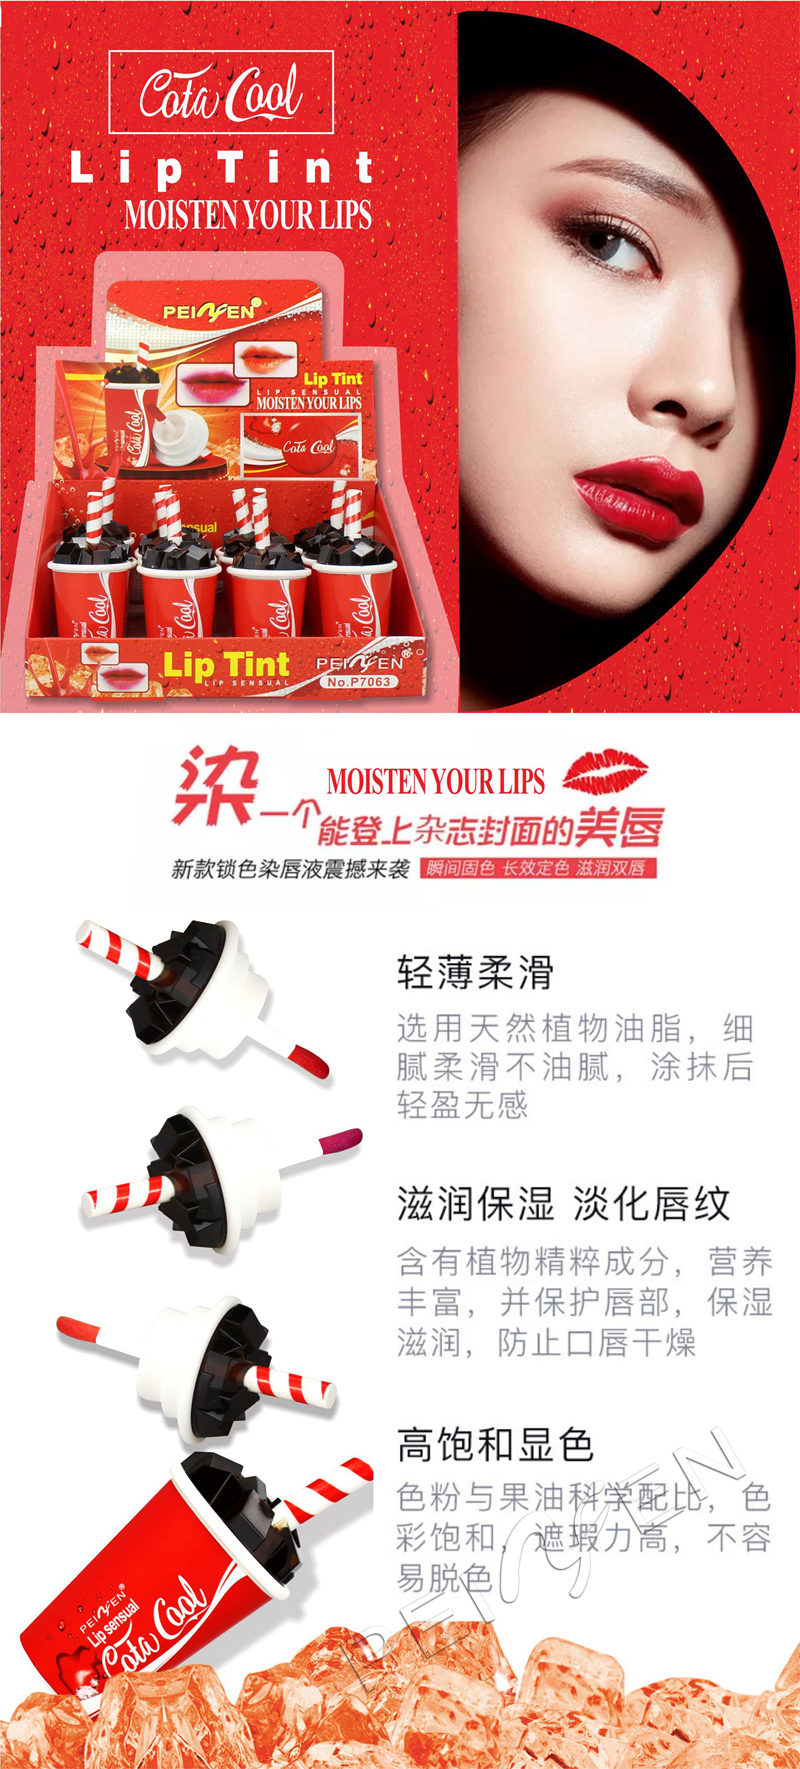 Beauty Essentials Enthusiastic Womens Fashion Fantastic Coke Bottle Color Change Makeup Lipstick Long Lasting Hydrating Cola Lipstick Lip Gloss Baby Lips N35